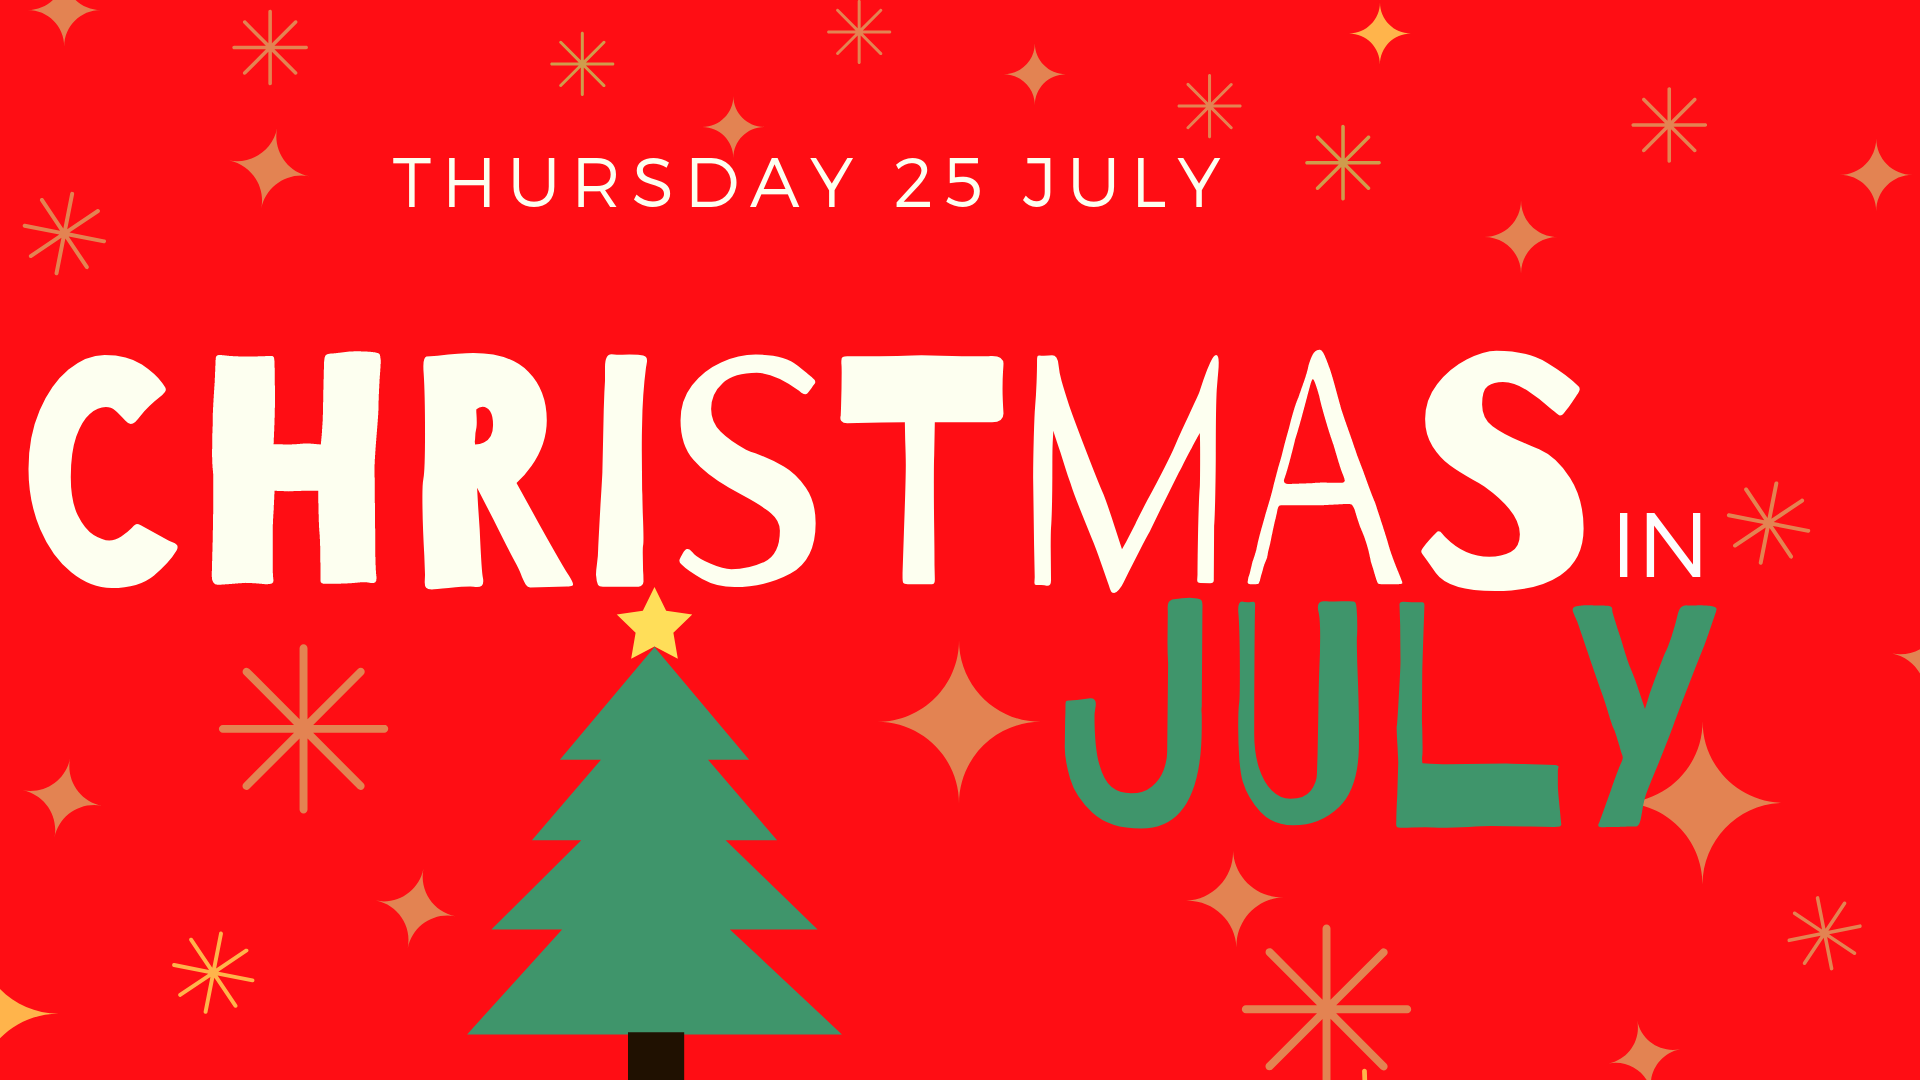 Christmas in July dinner event